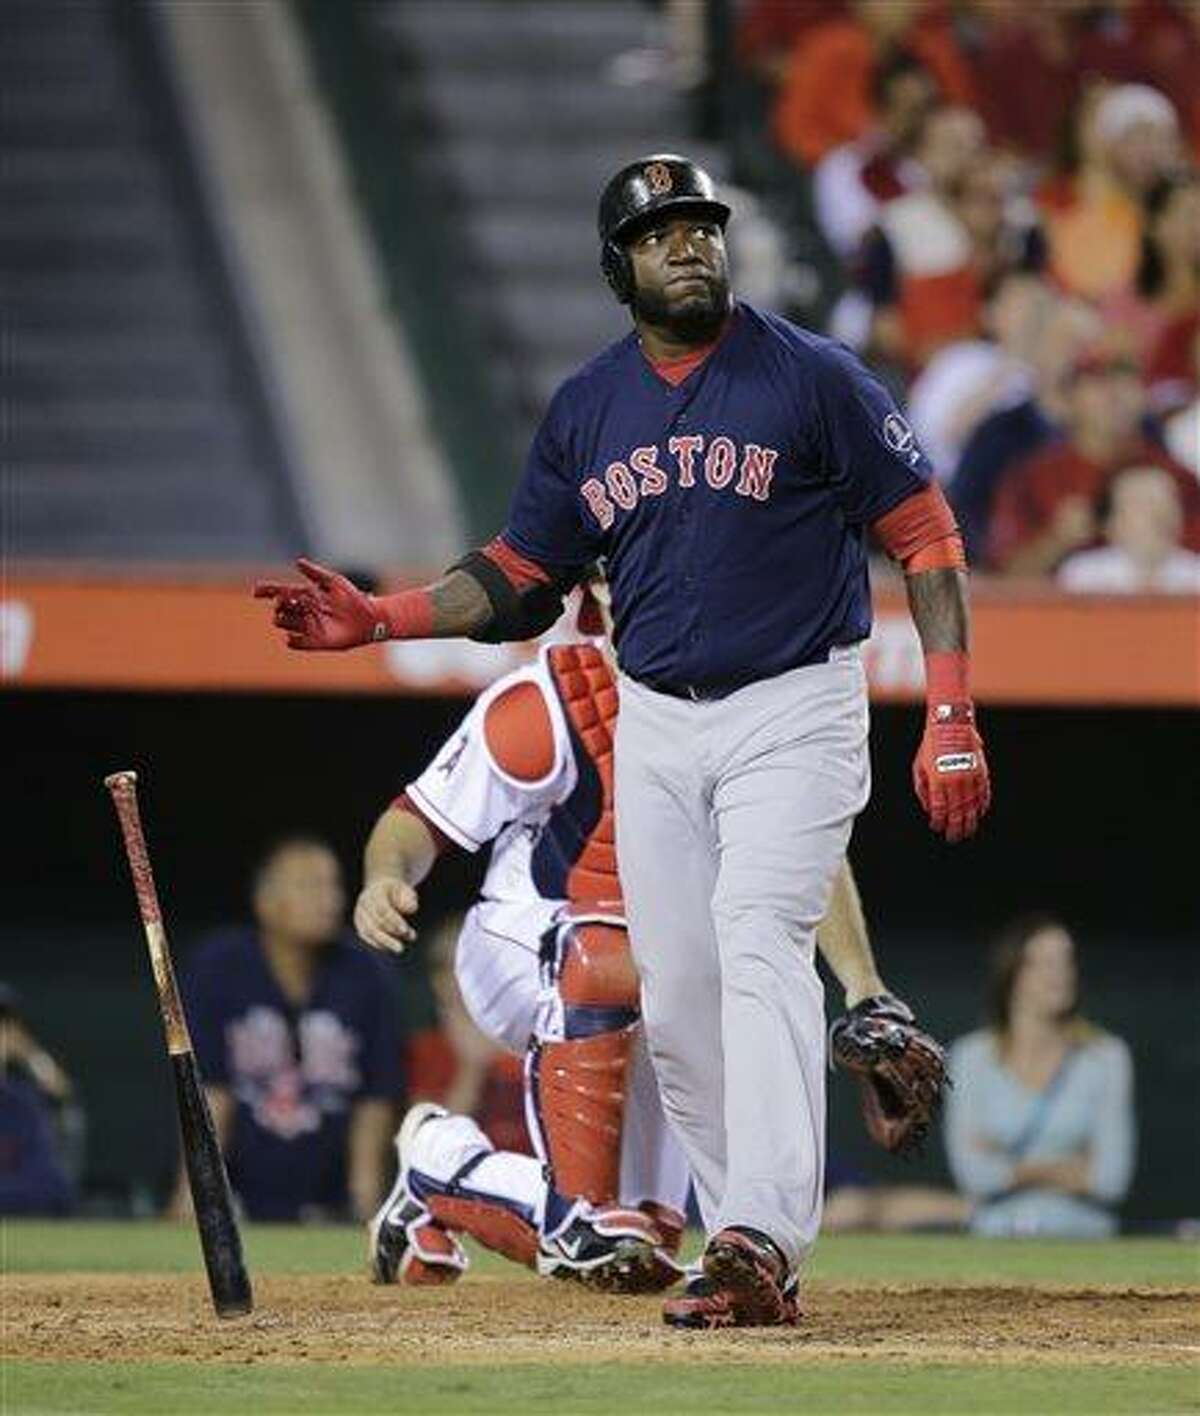 Boston Red Sox's David Ortiz watches the flight of his two-run home run during the eighth inning of a baseball game against the Los Angeles Angels in Anaheim, Calif., Friday, July 5, 2013. (AP Photo/Jae C. Hong)